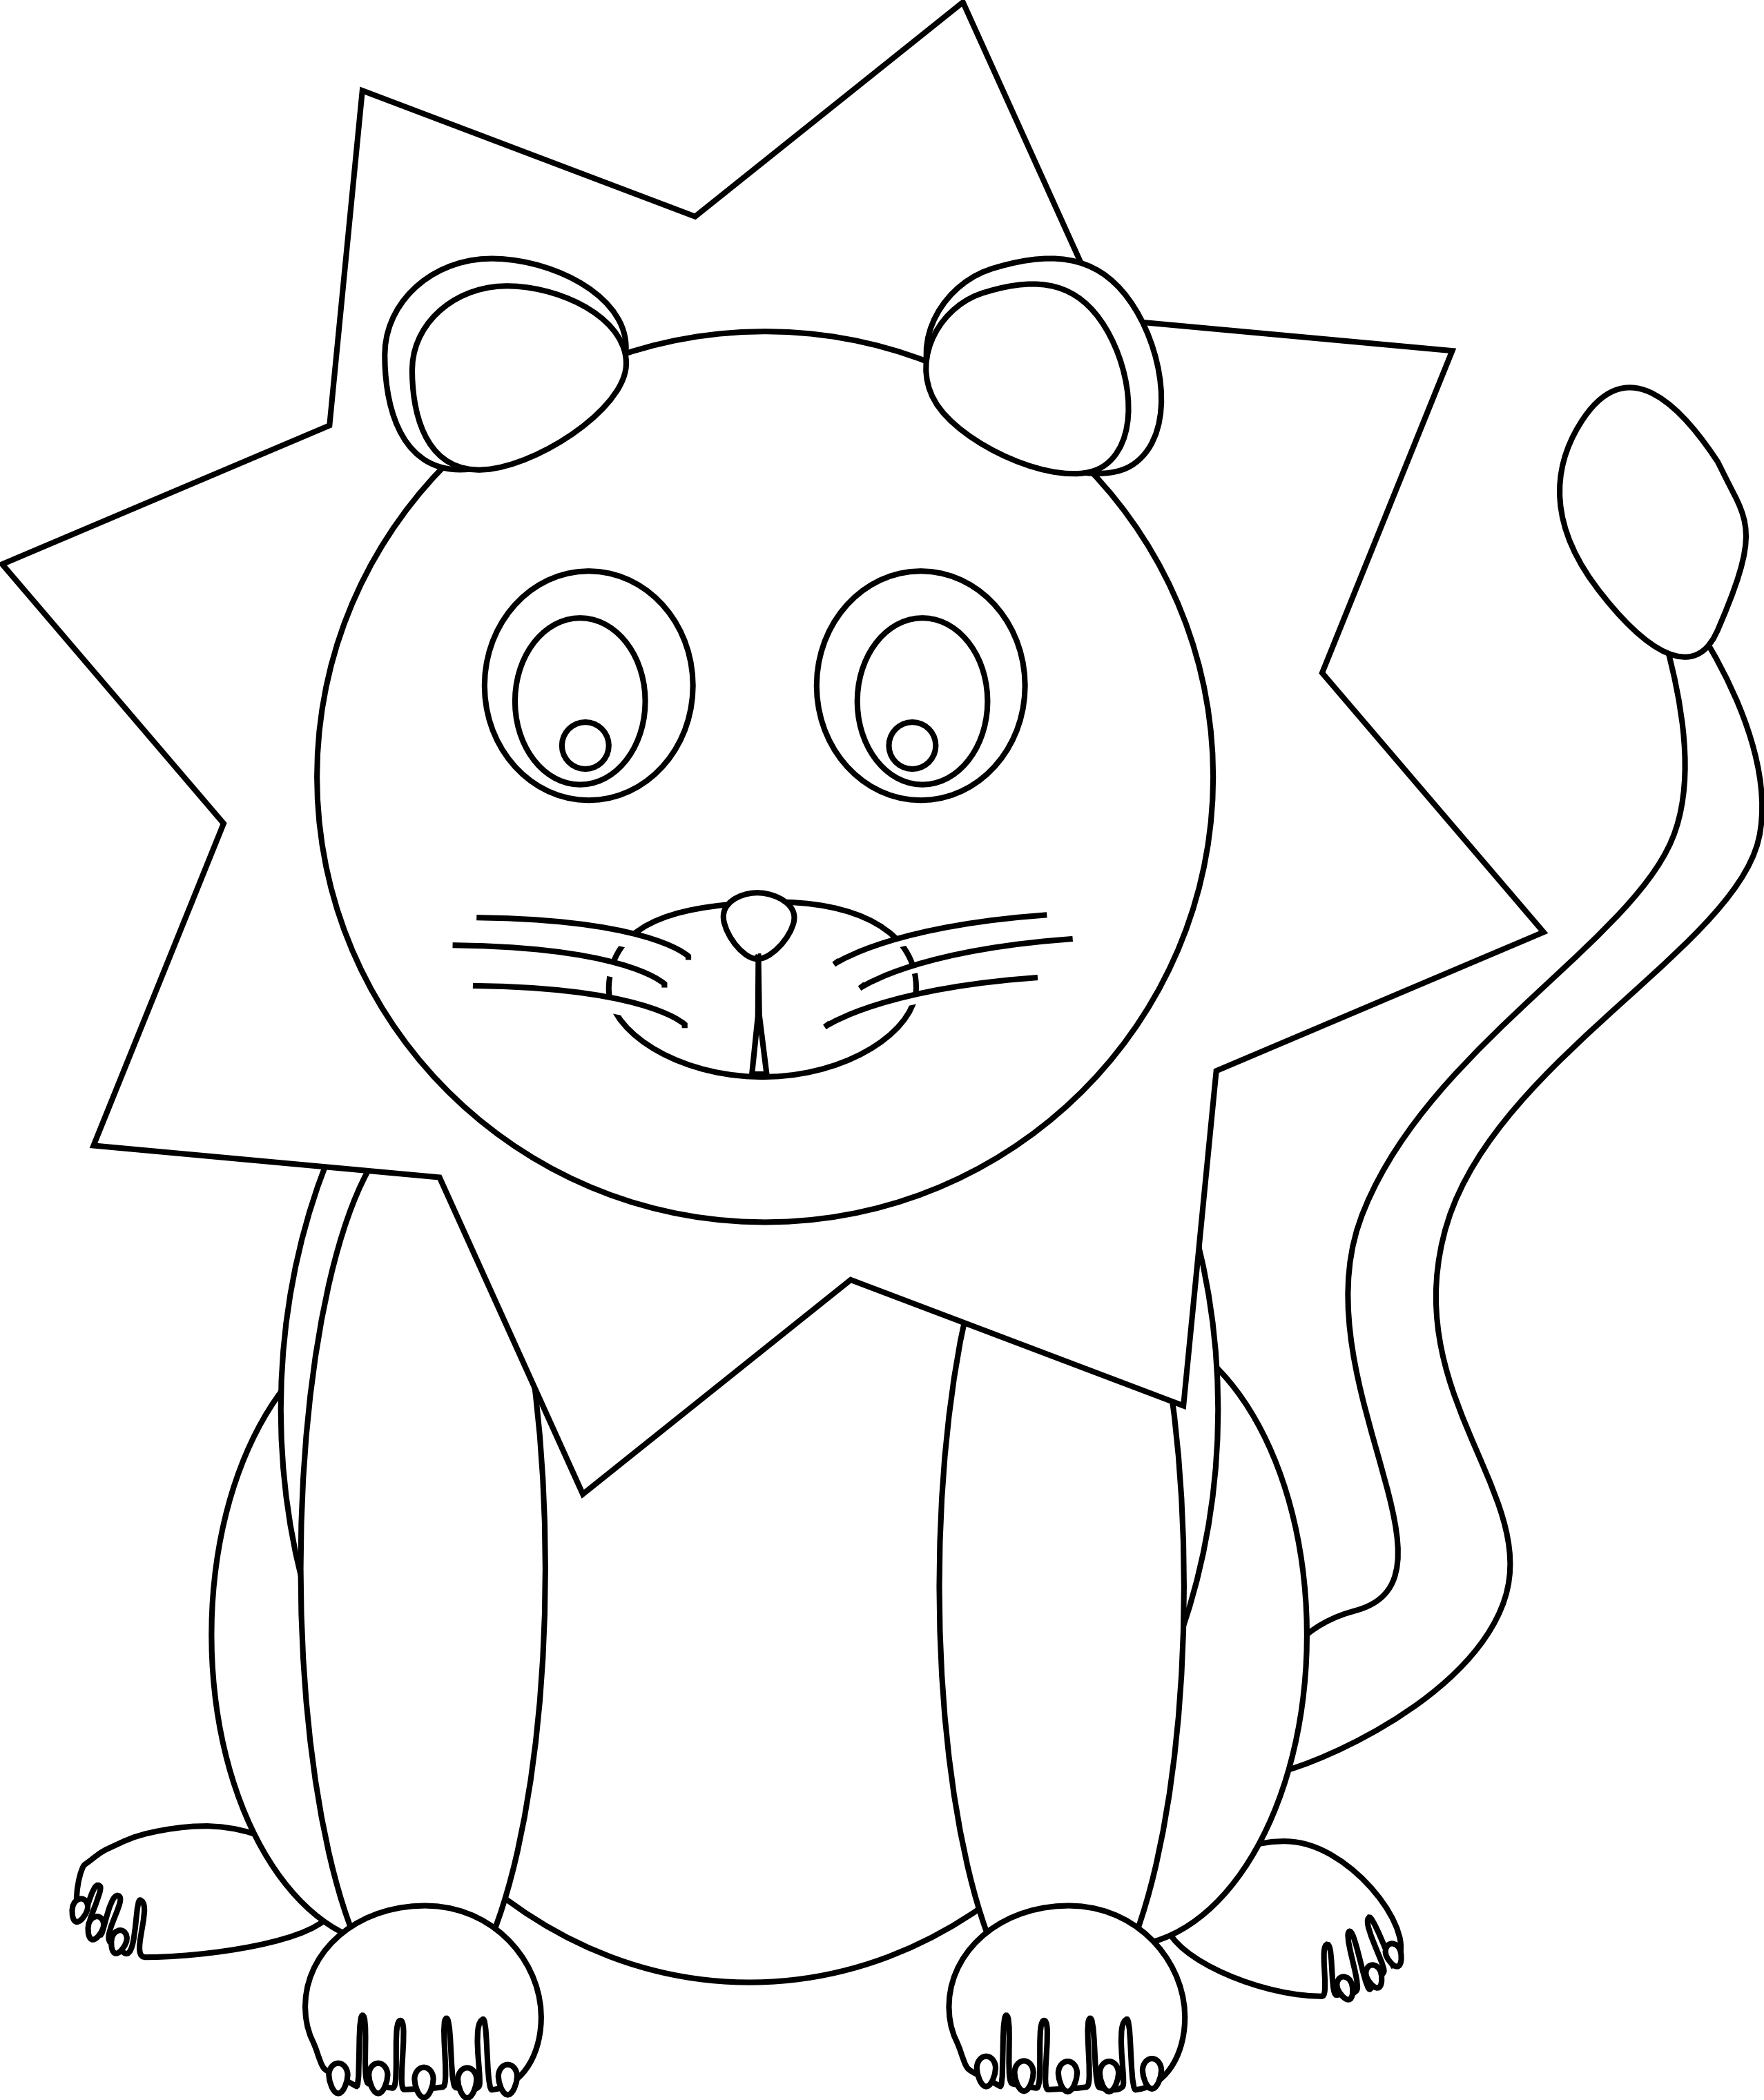 stuffed animal coloring pages stuffed animal coloring pages at getcoloringscom free stuffed pages animal coloring